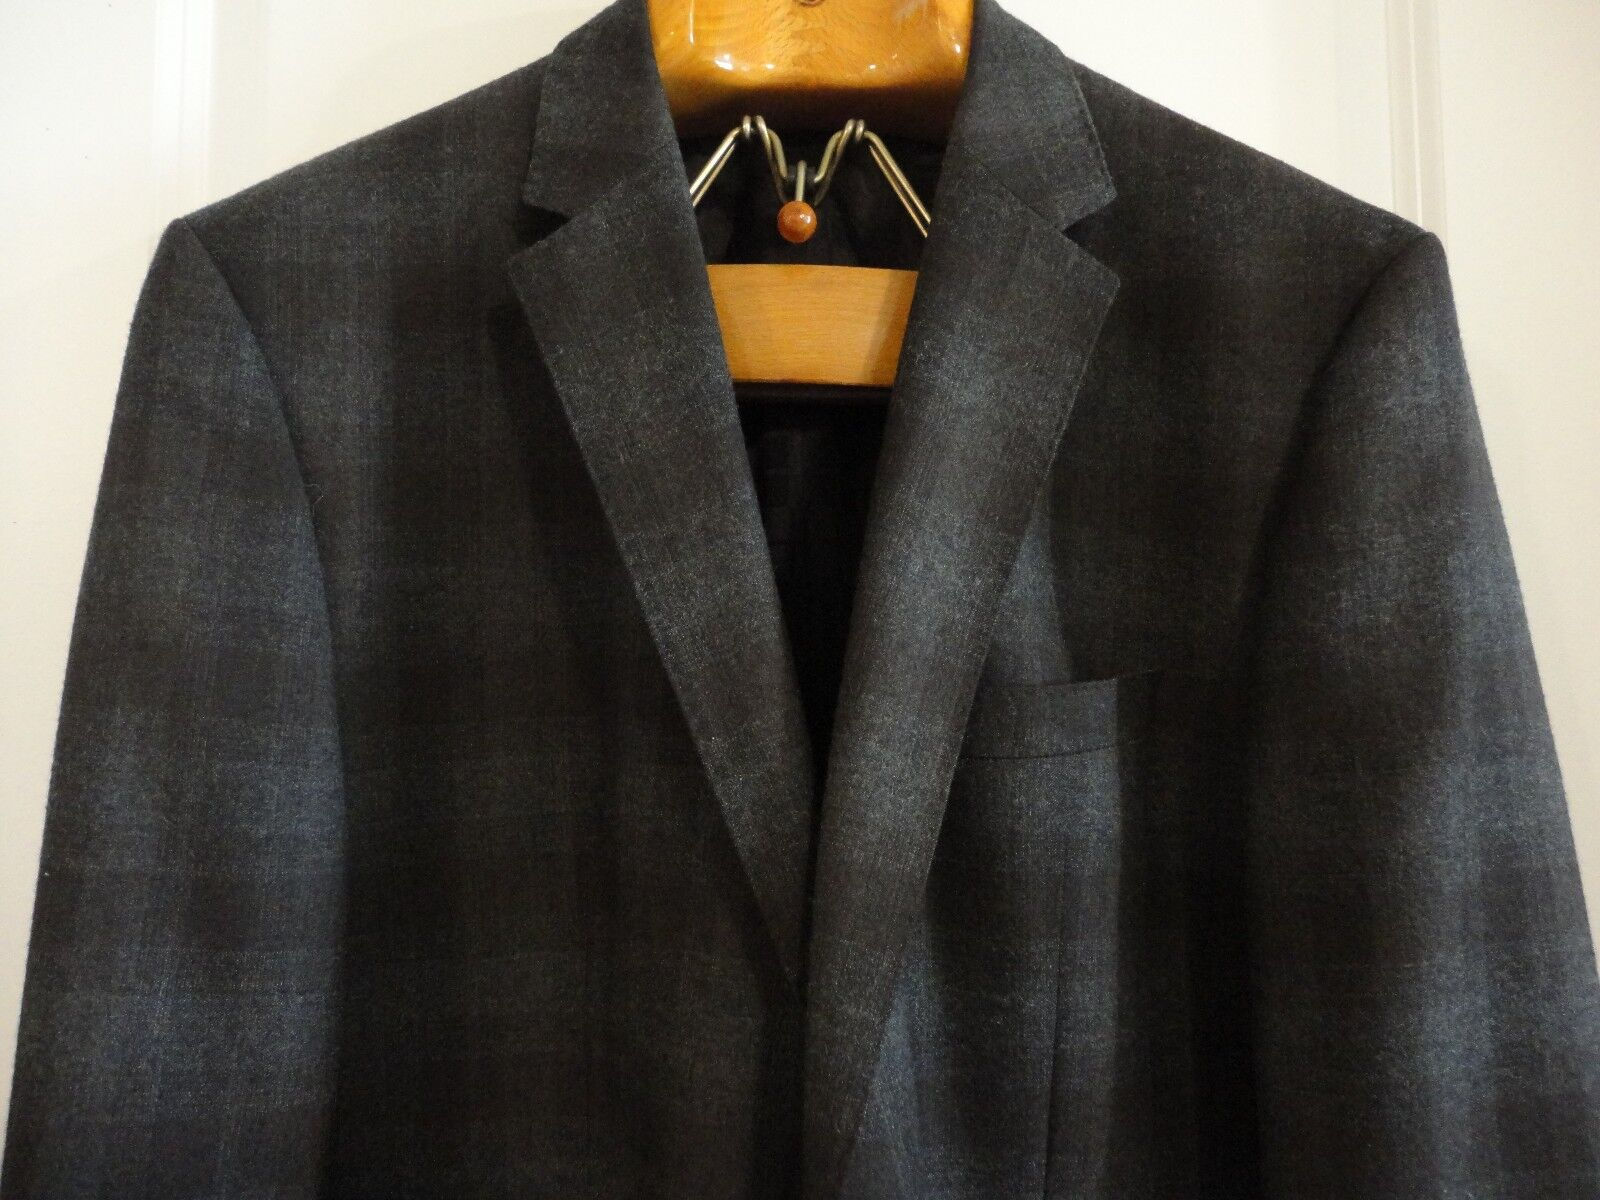 HUGO BOSS Charcoal braun Shadow Plaid Wool 2-Btn The Keys3 Blazer Jacket 44 R